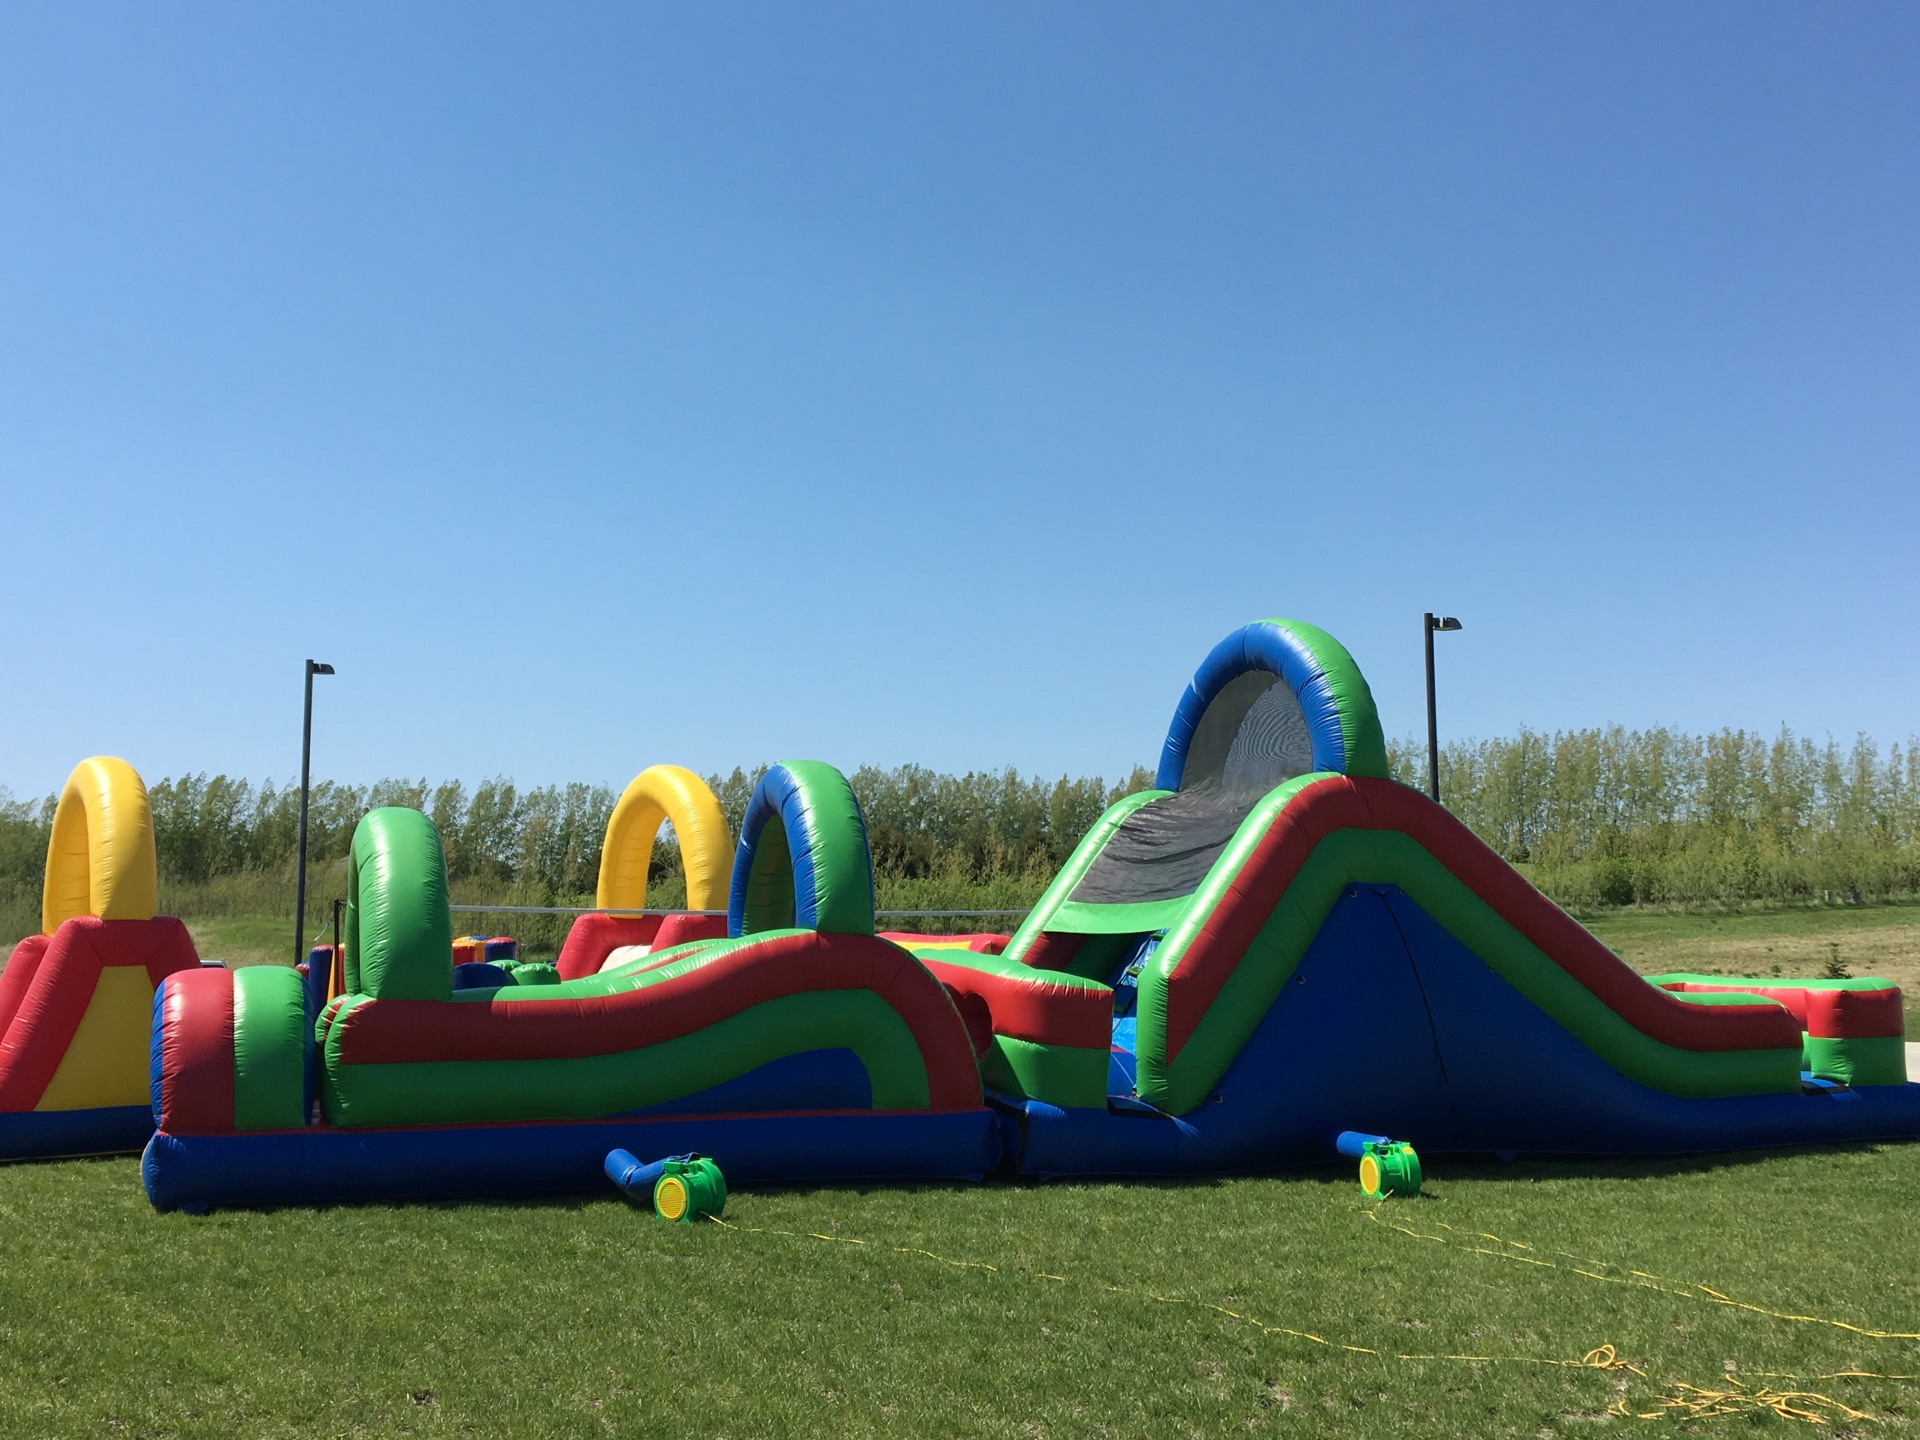 55' Obstacle Course $575